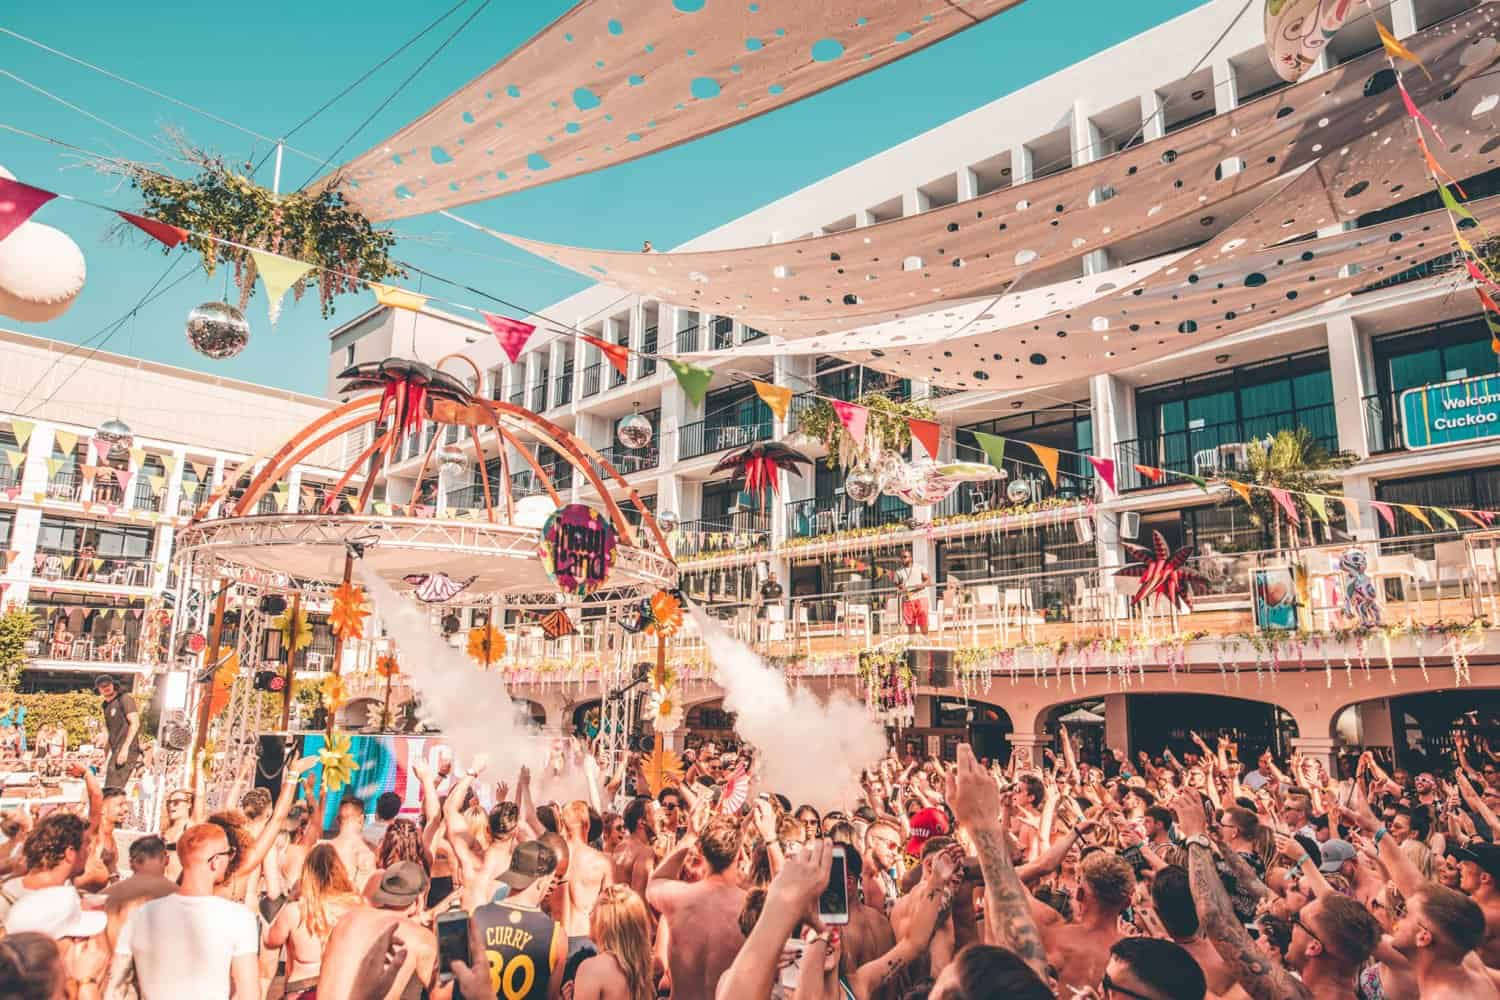 Cuckoo Land Pool Party Ibiza 2020 - Tickets, Events and Lineup 1